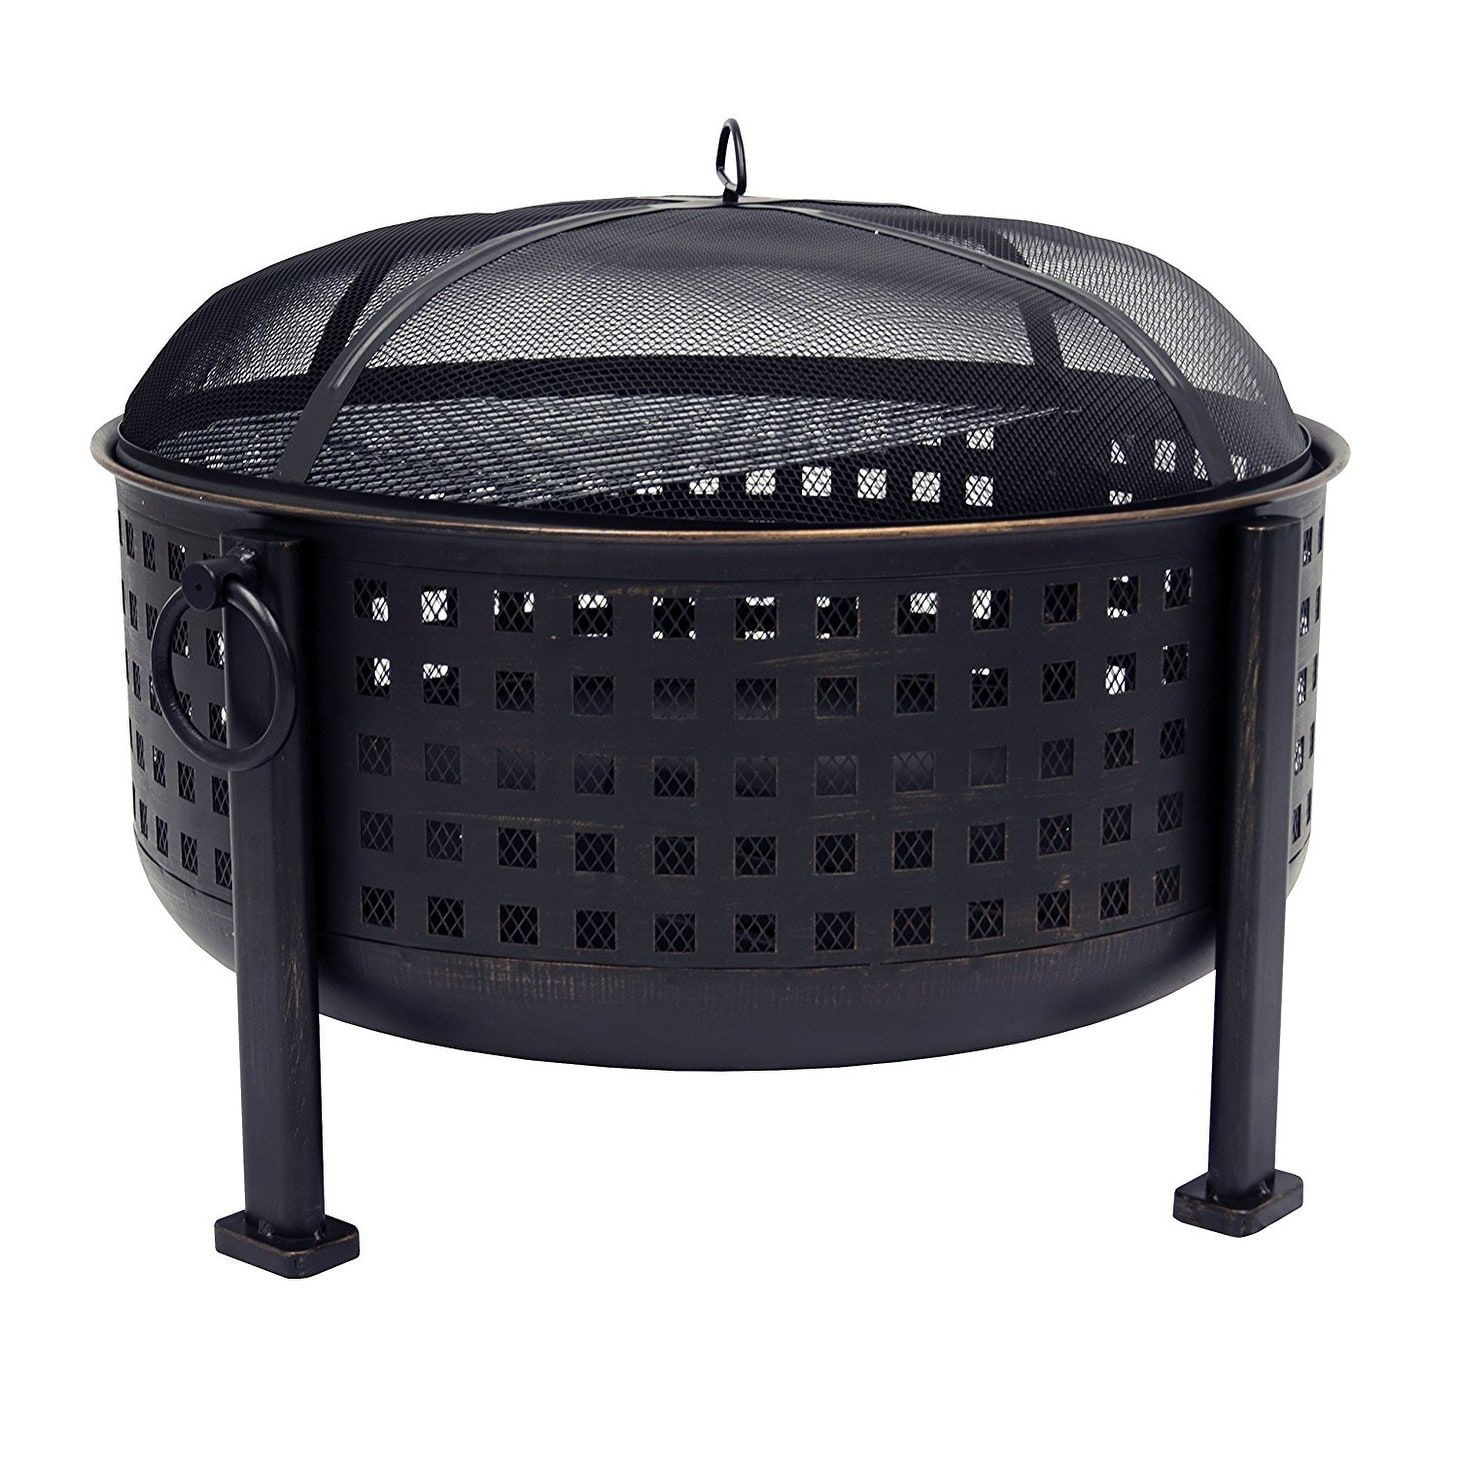 2625ac6f38df0ef5fac7480ef23e7ea9 Top Result 50 Awesome Fire Pit Store Photography 2018 Hzt6